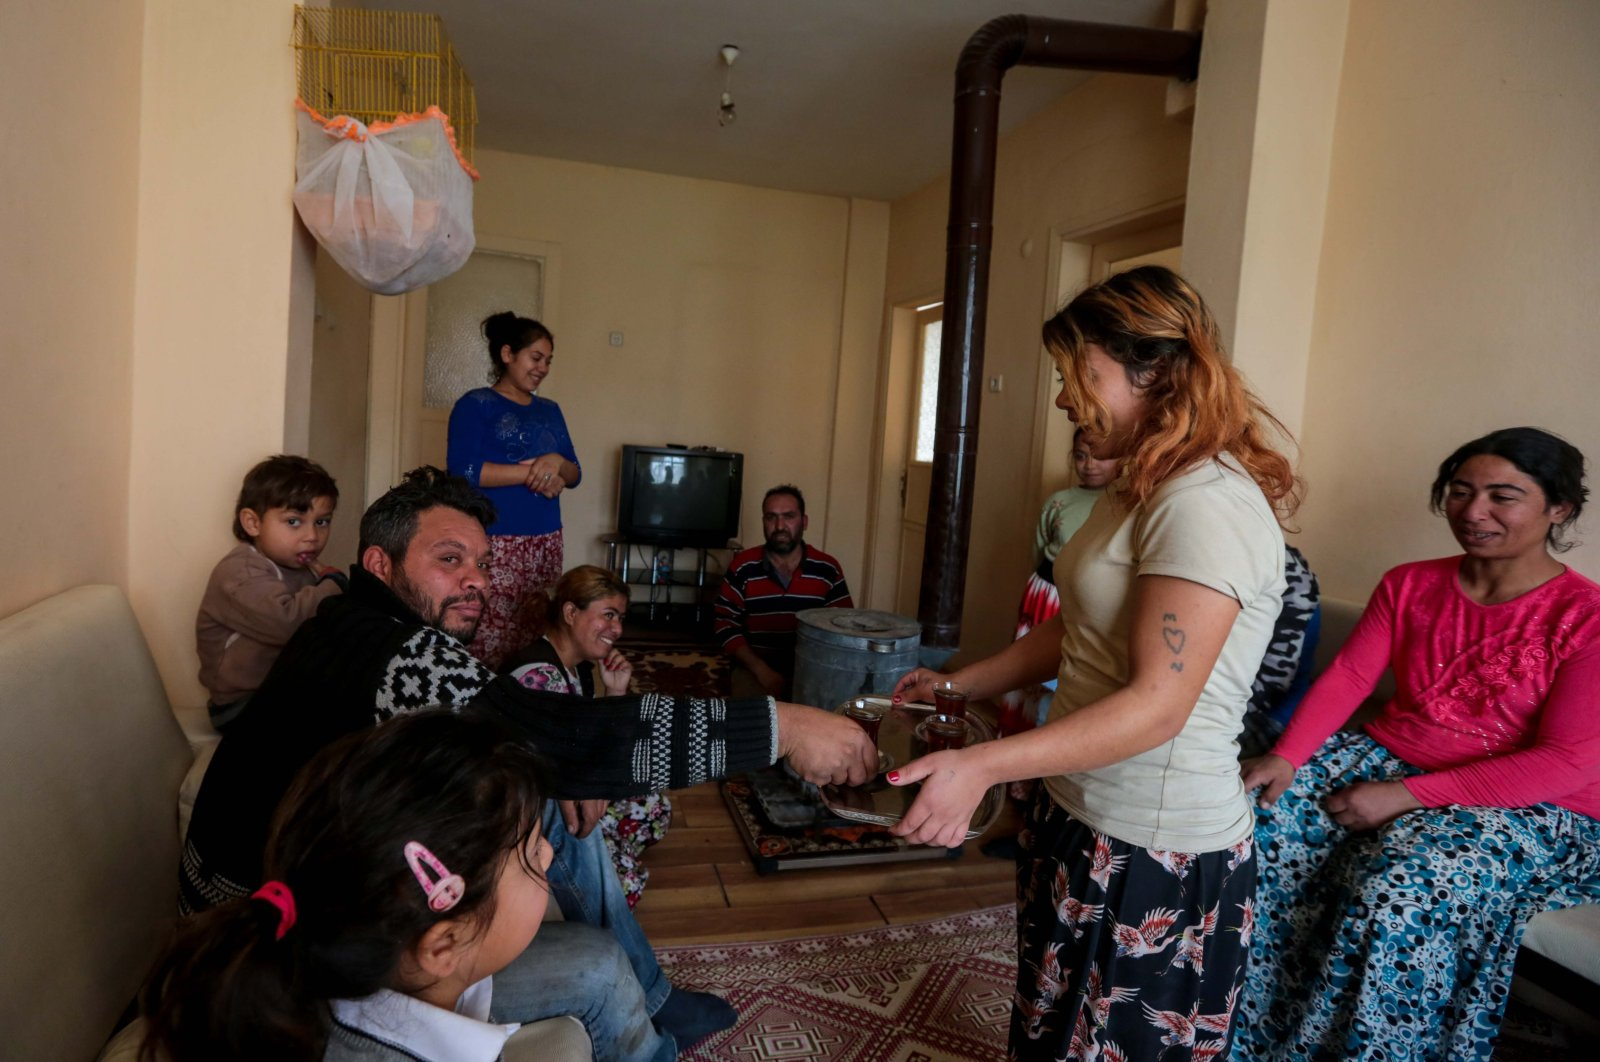 A Roma family in their new home built by public agencies and NGOs in the Sultanbeyli district, Istanbul, Turkey, May 9, 2019. (PHOTO BY UĞUR YILDIRIM)